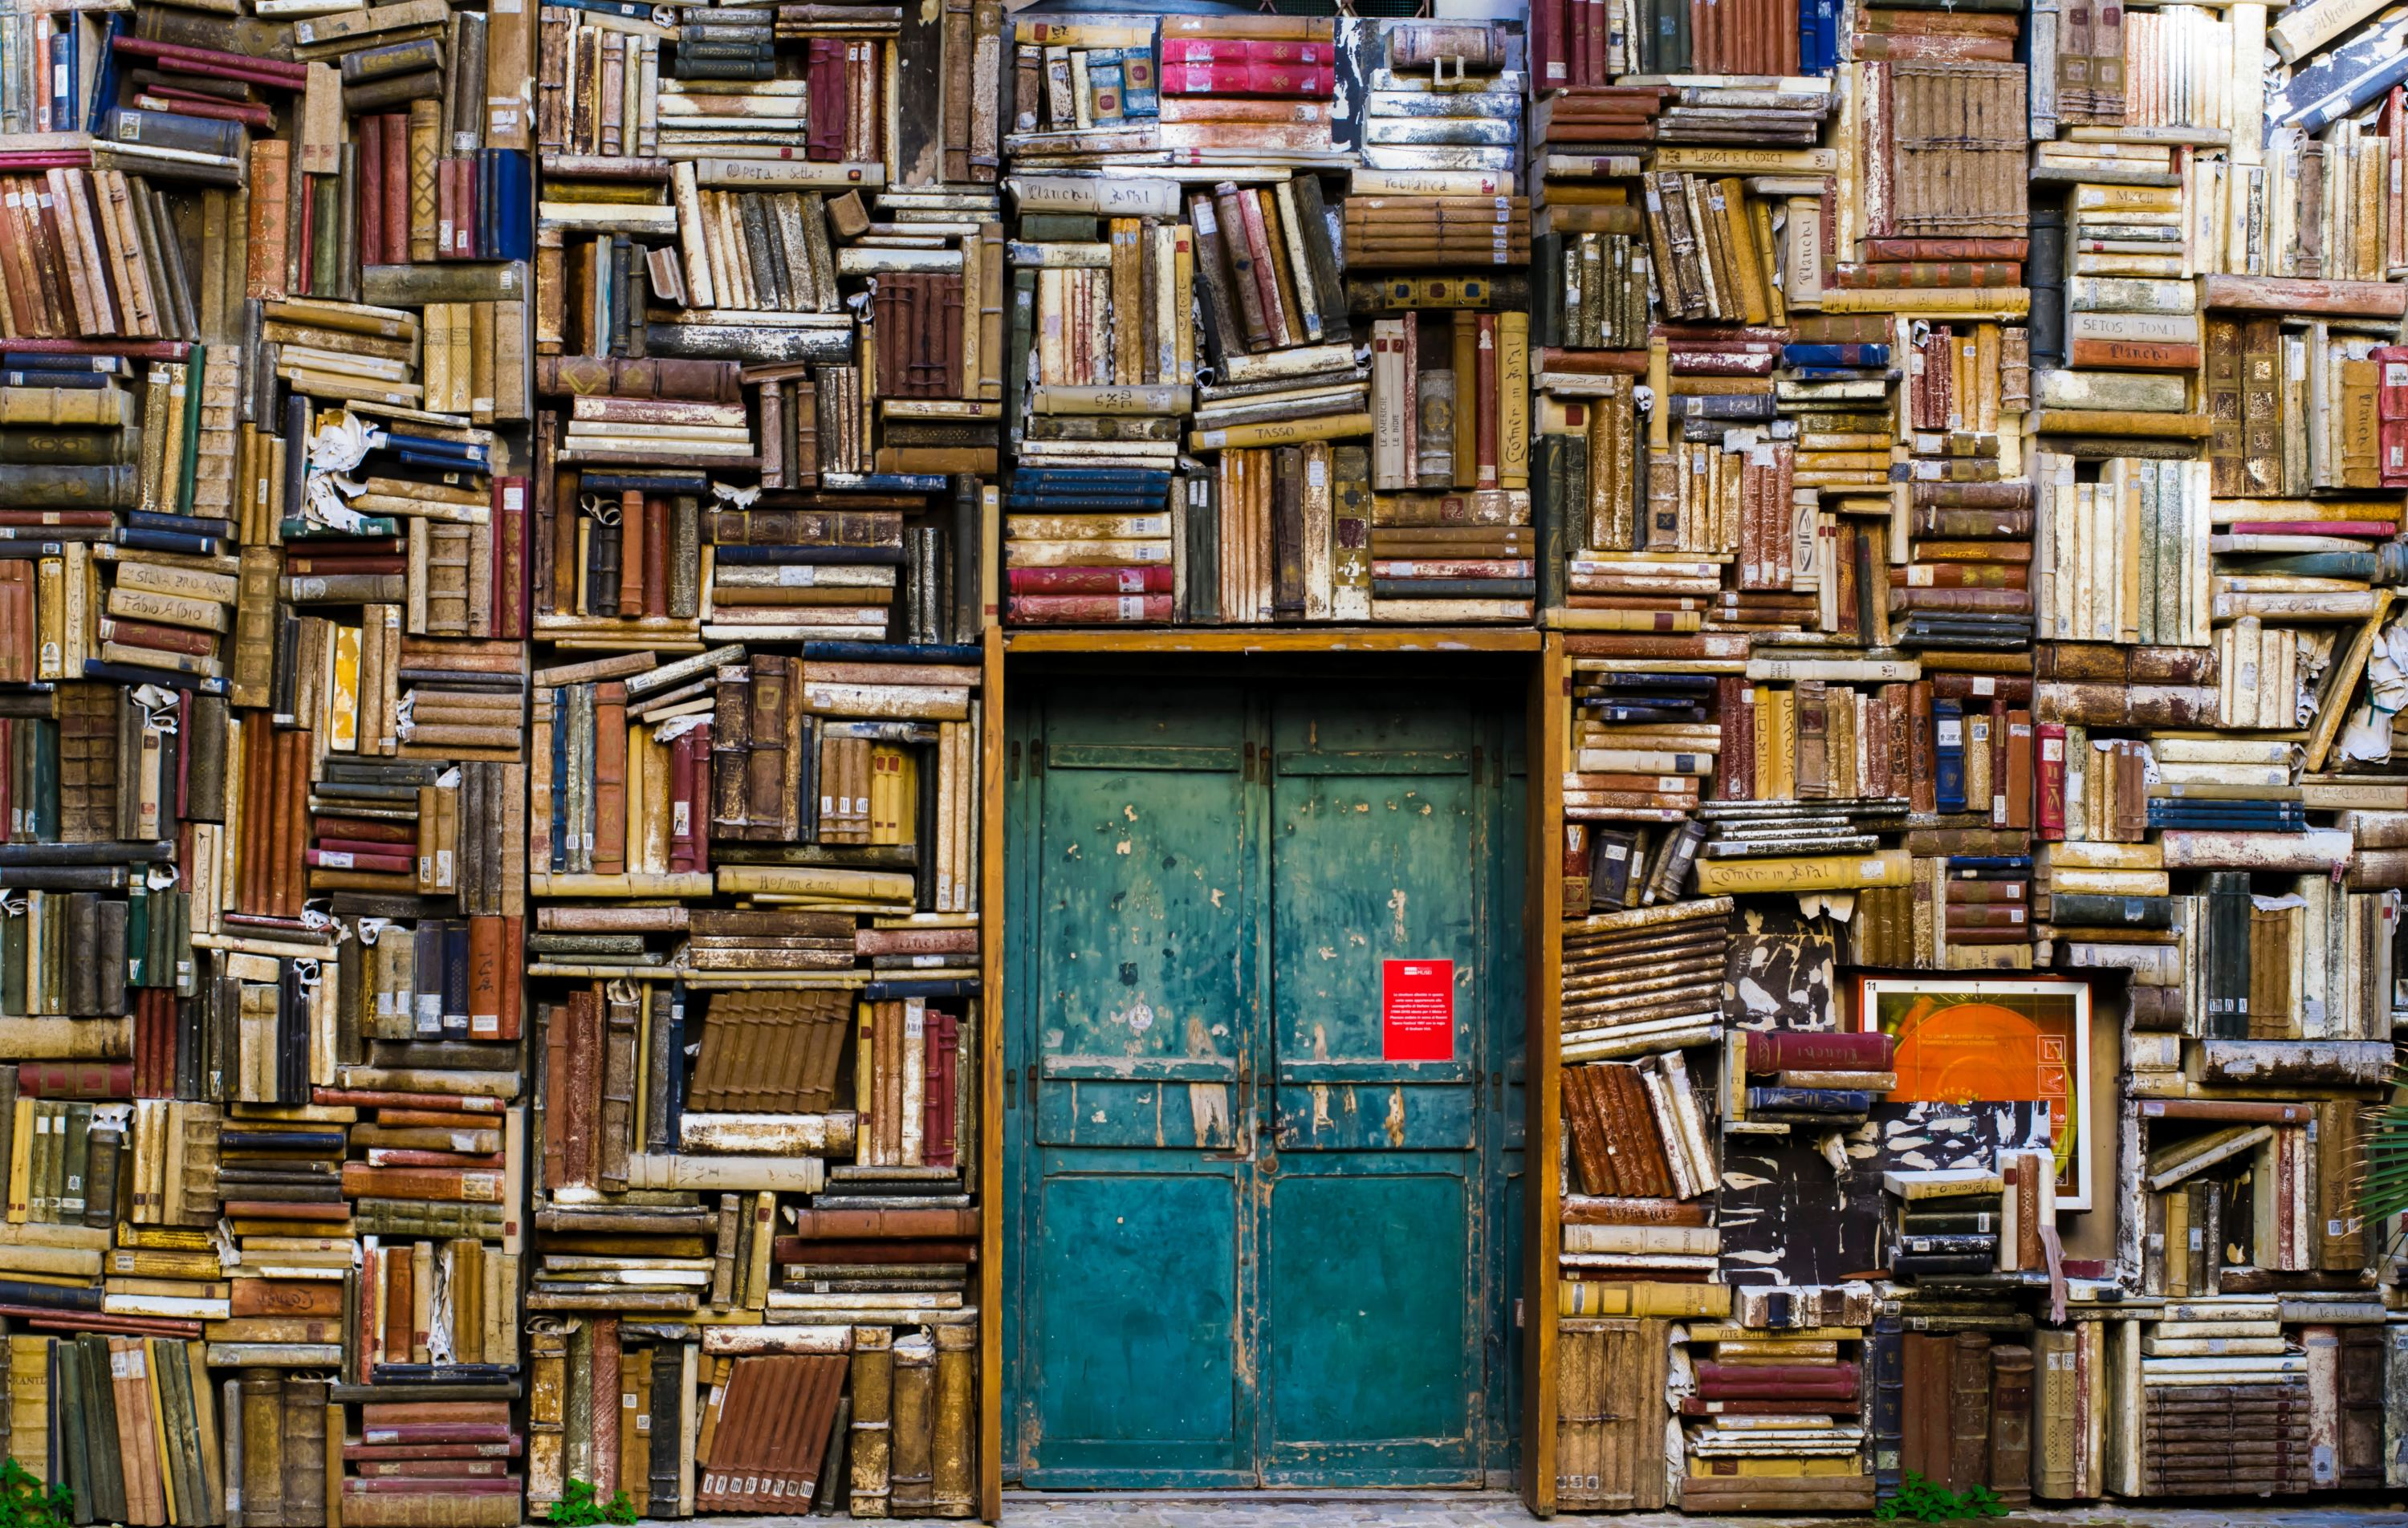 Door and books eugenio-mazzone-6ywyo2qtaZ8-unsplash